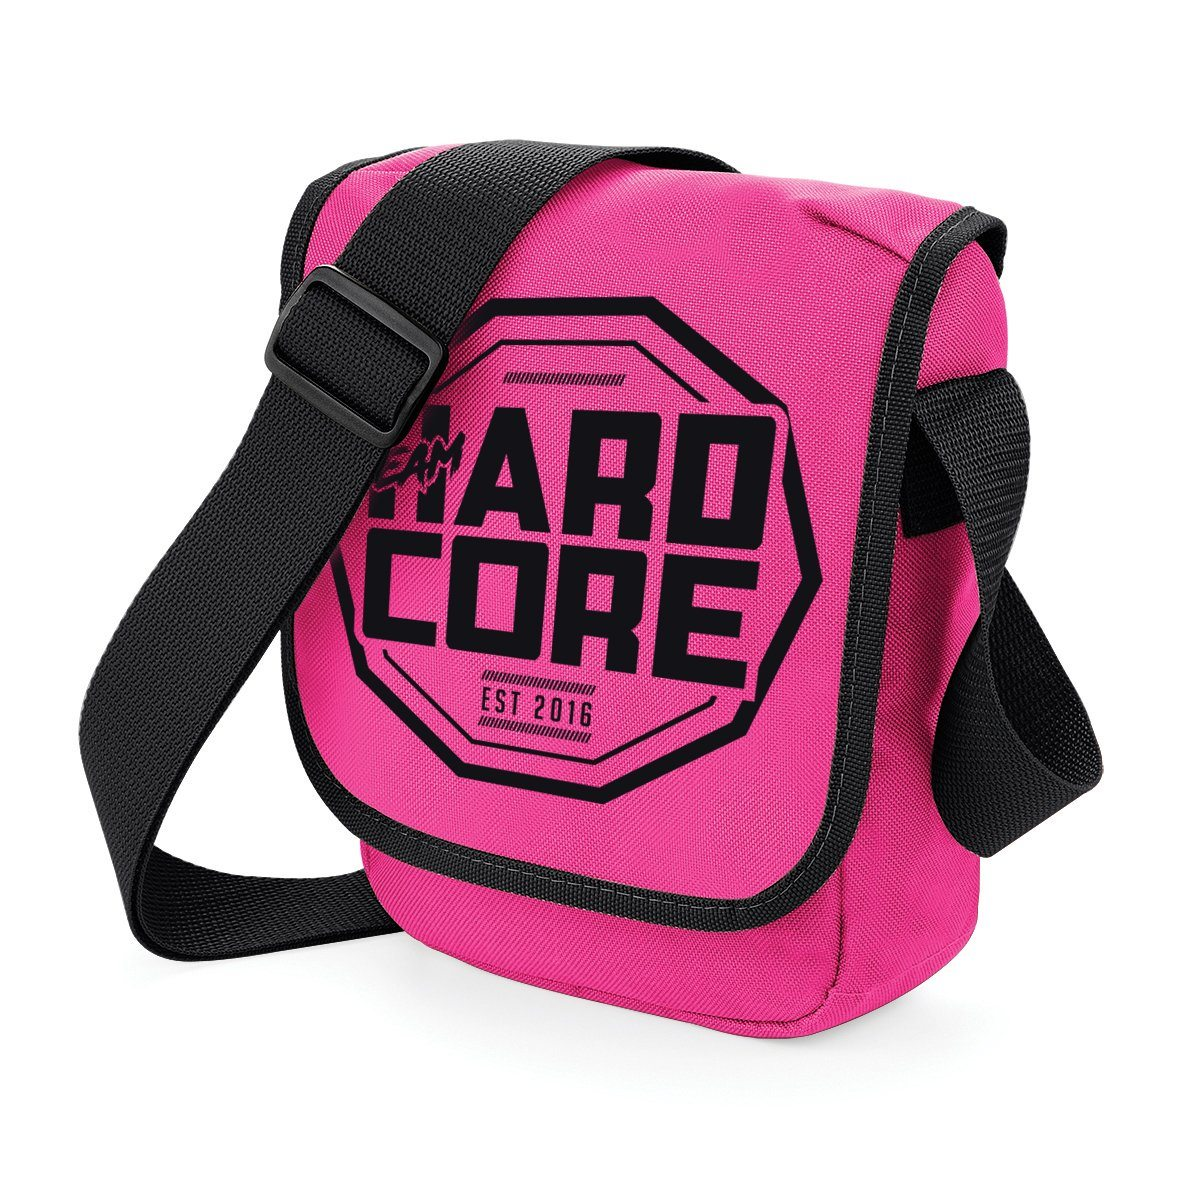 Team Hardcore Headphone Bag Bag Team Hardcore Pink / Black